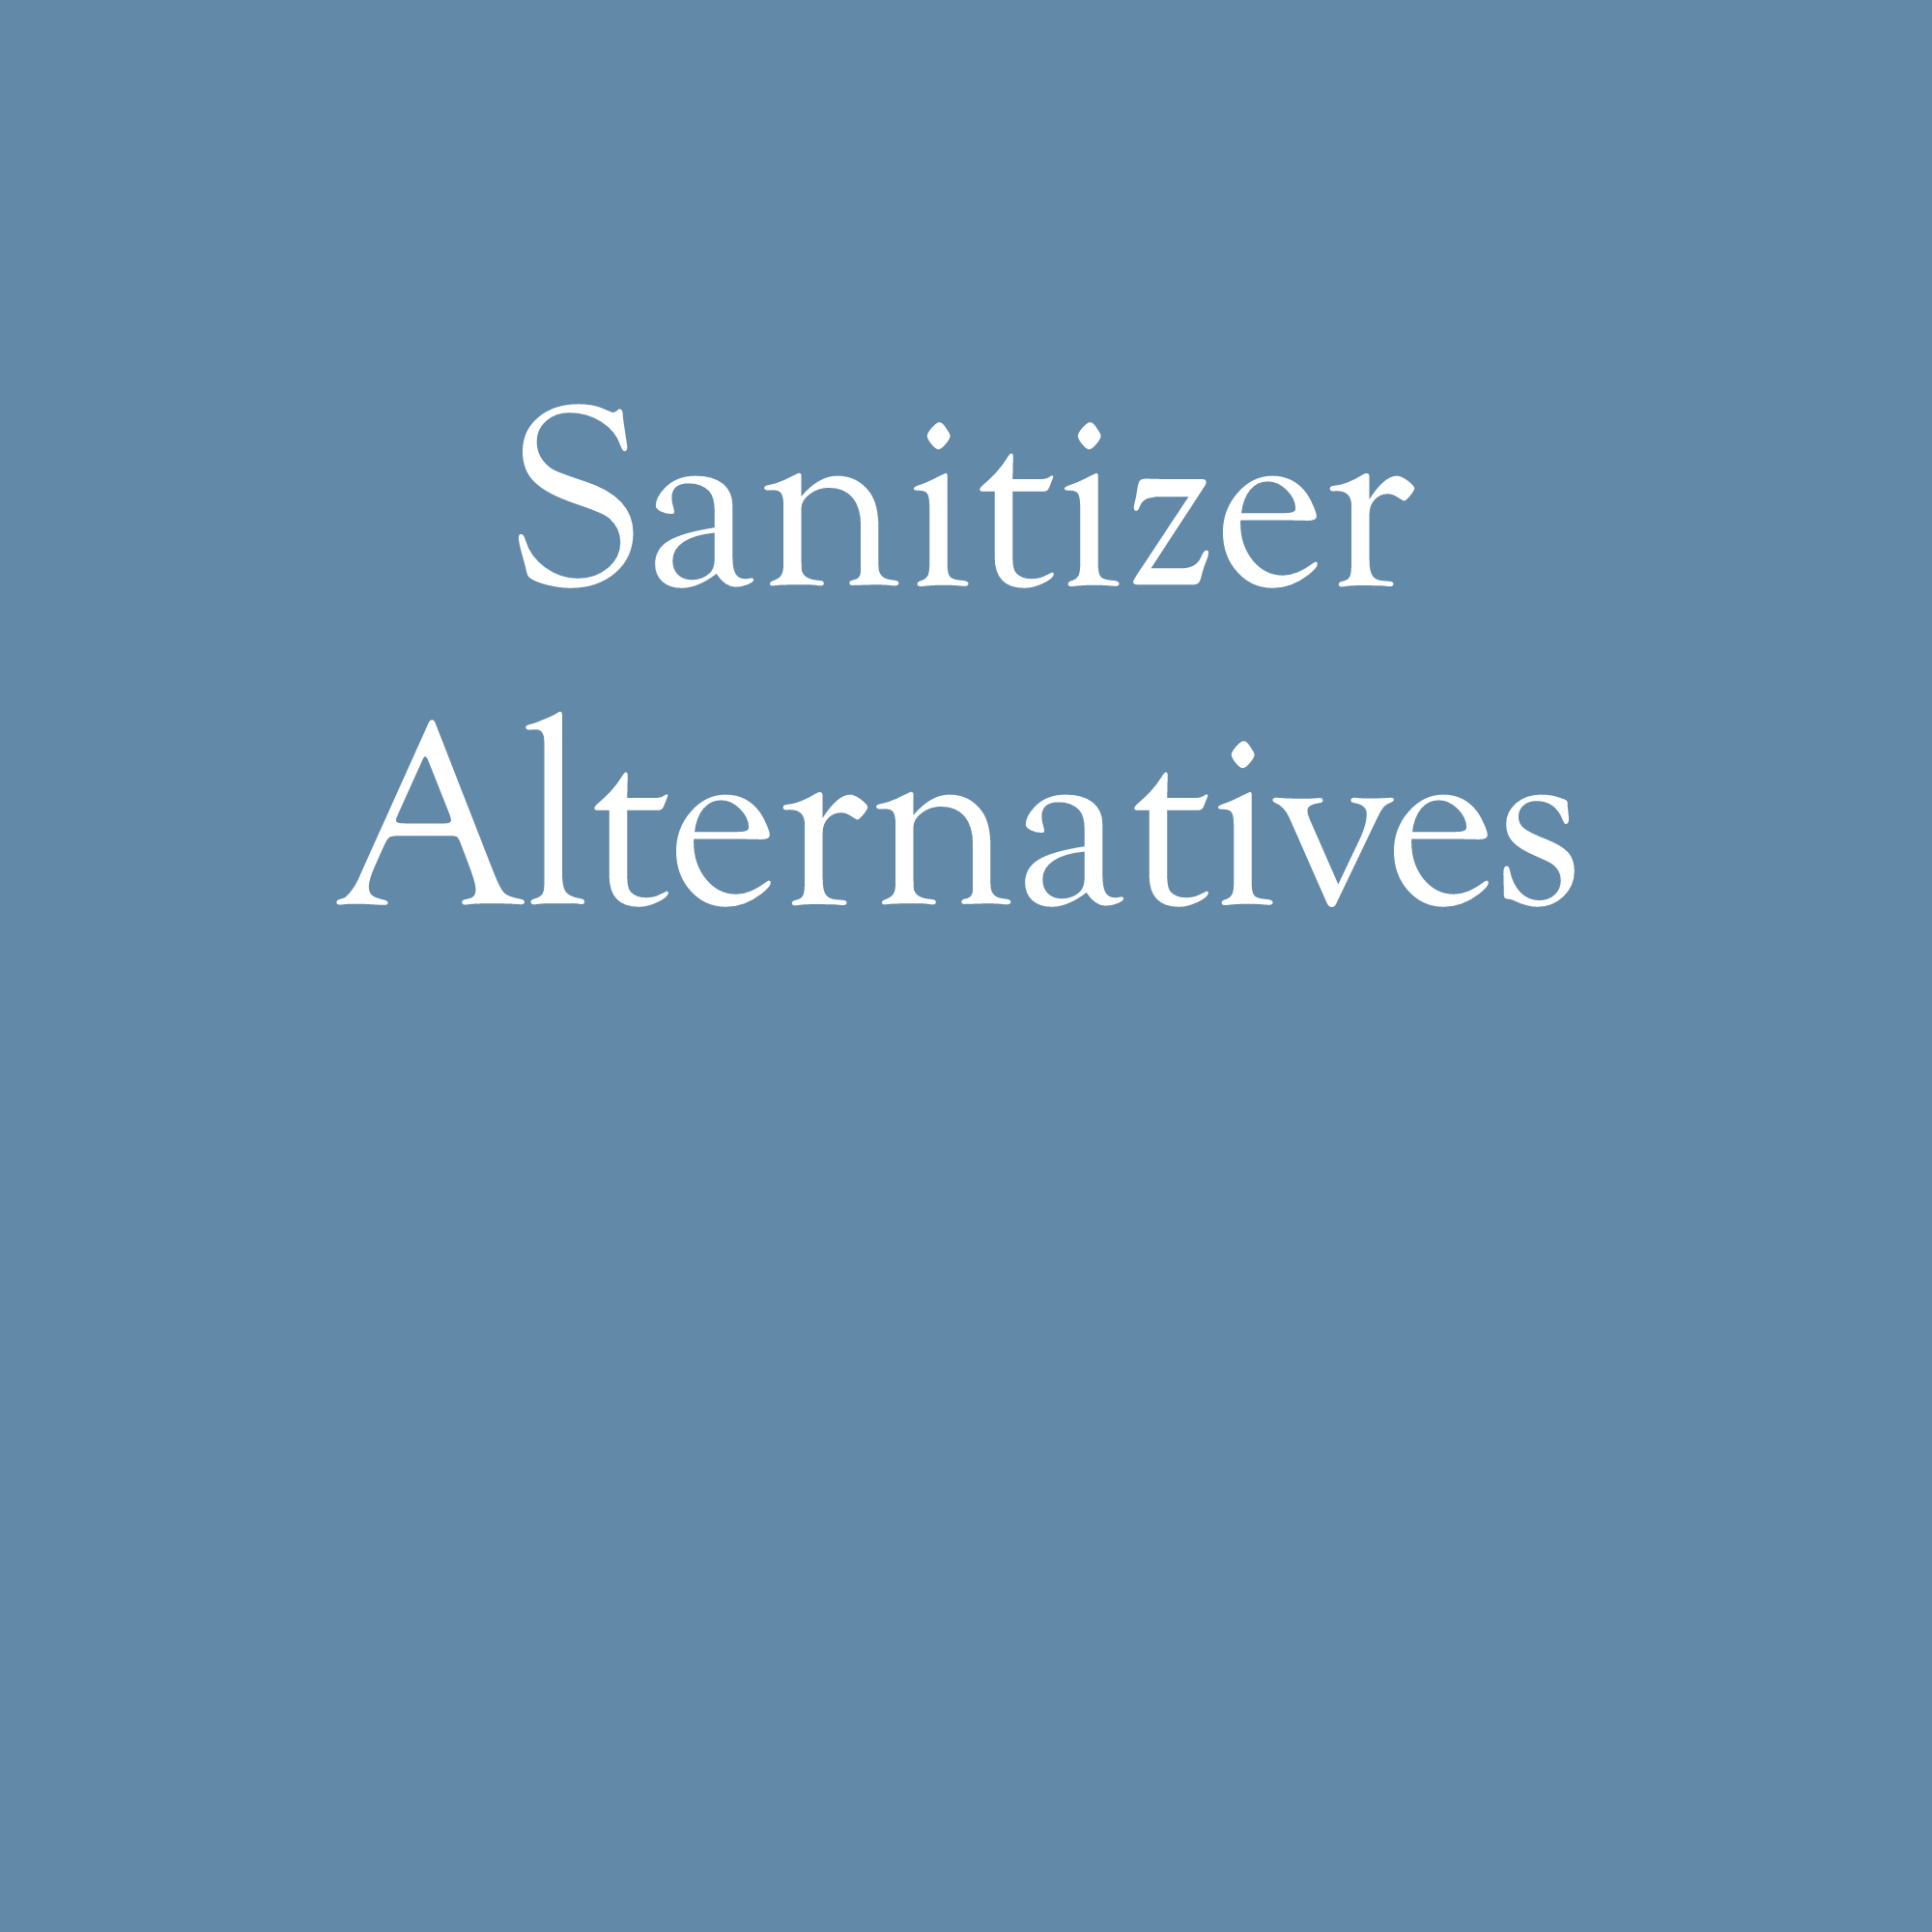 Sanitizer Alternatives